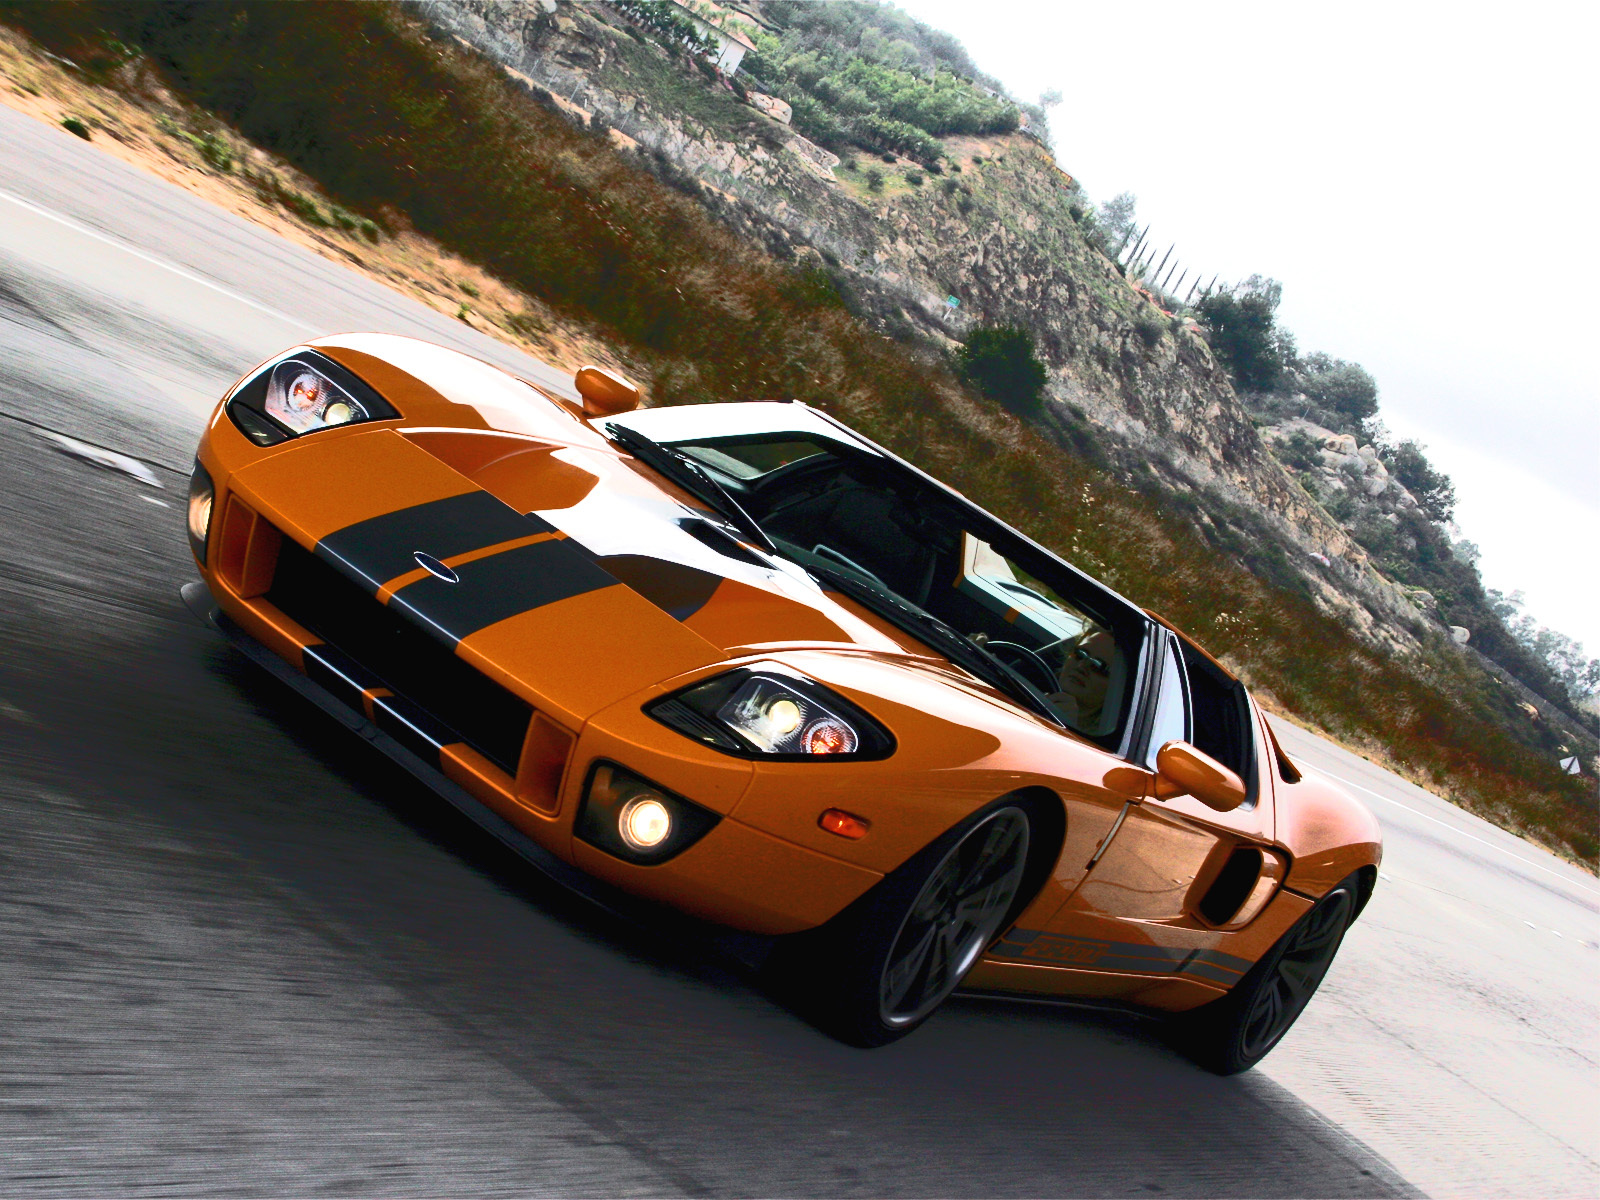 Ford GT ;) - Ford GT Wallpaper